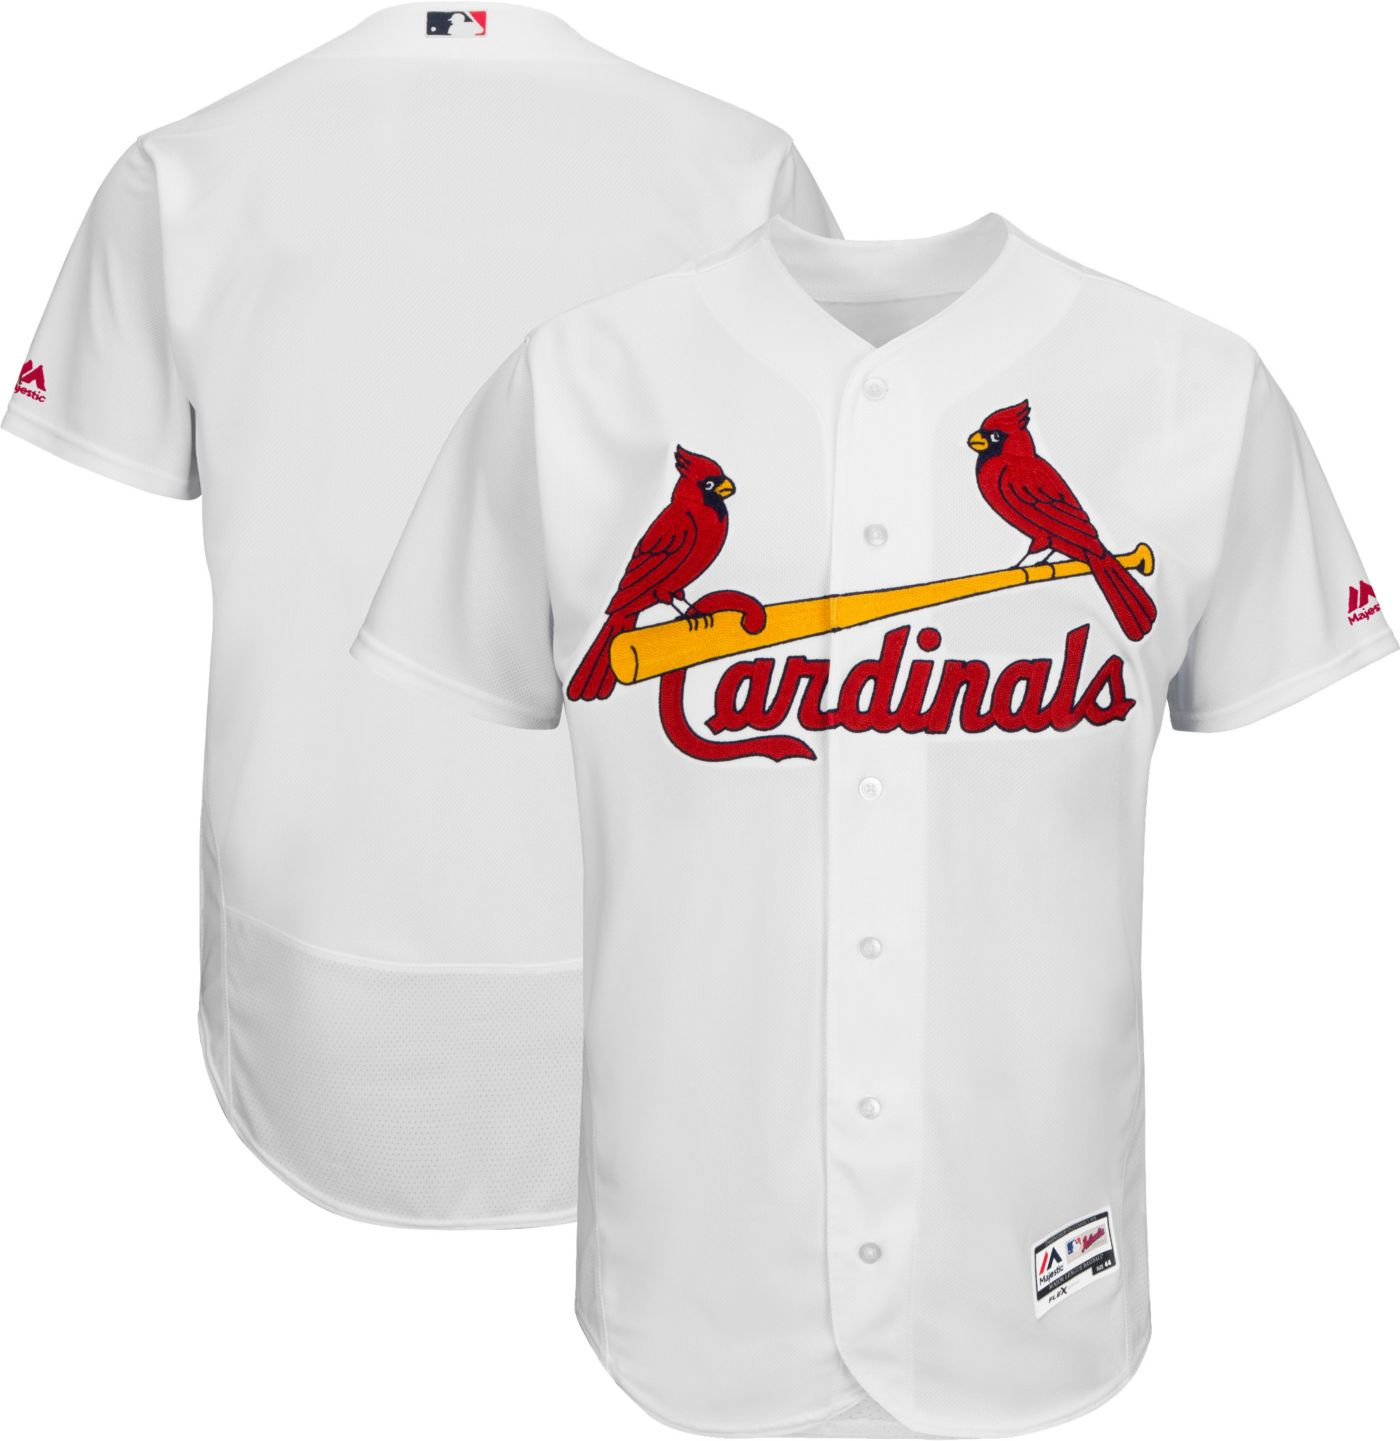 Majestic Men's Authentic St. Louis Cardinals Home White Flex Base On-Field Jersey